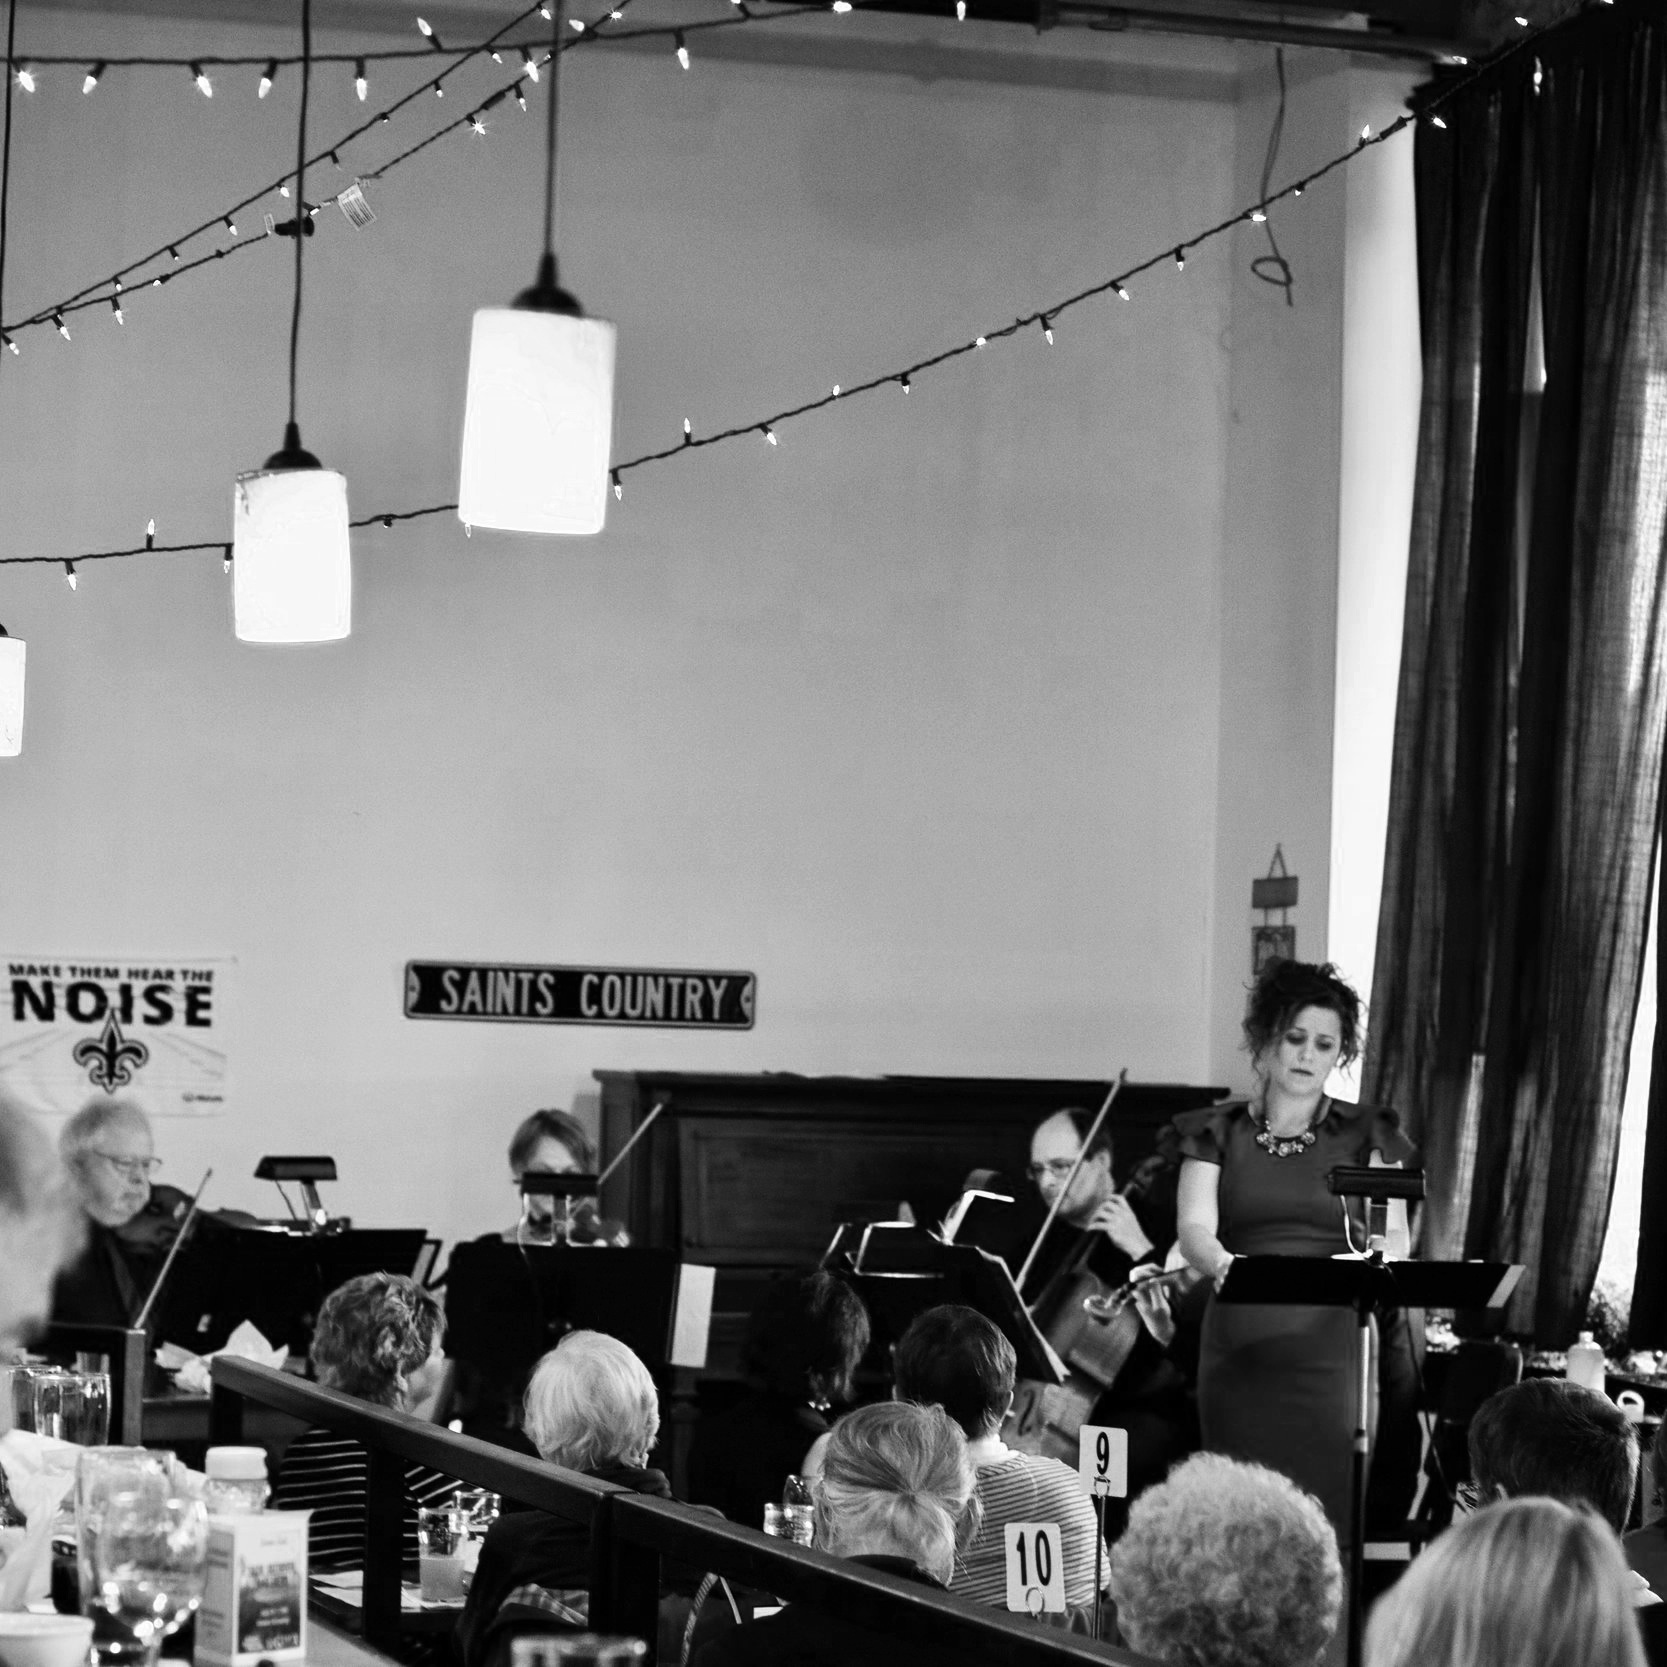 Auburn Symphony kicks off Summer Series - Auburn Reporter // 6.17.19The Auburn Symphony's Summer Series begins Thursday, June 27 with From the Stage!, at Geaux Brewing.